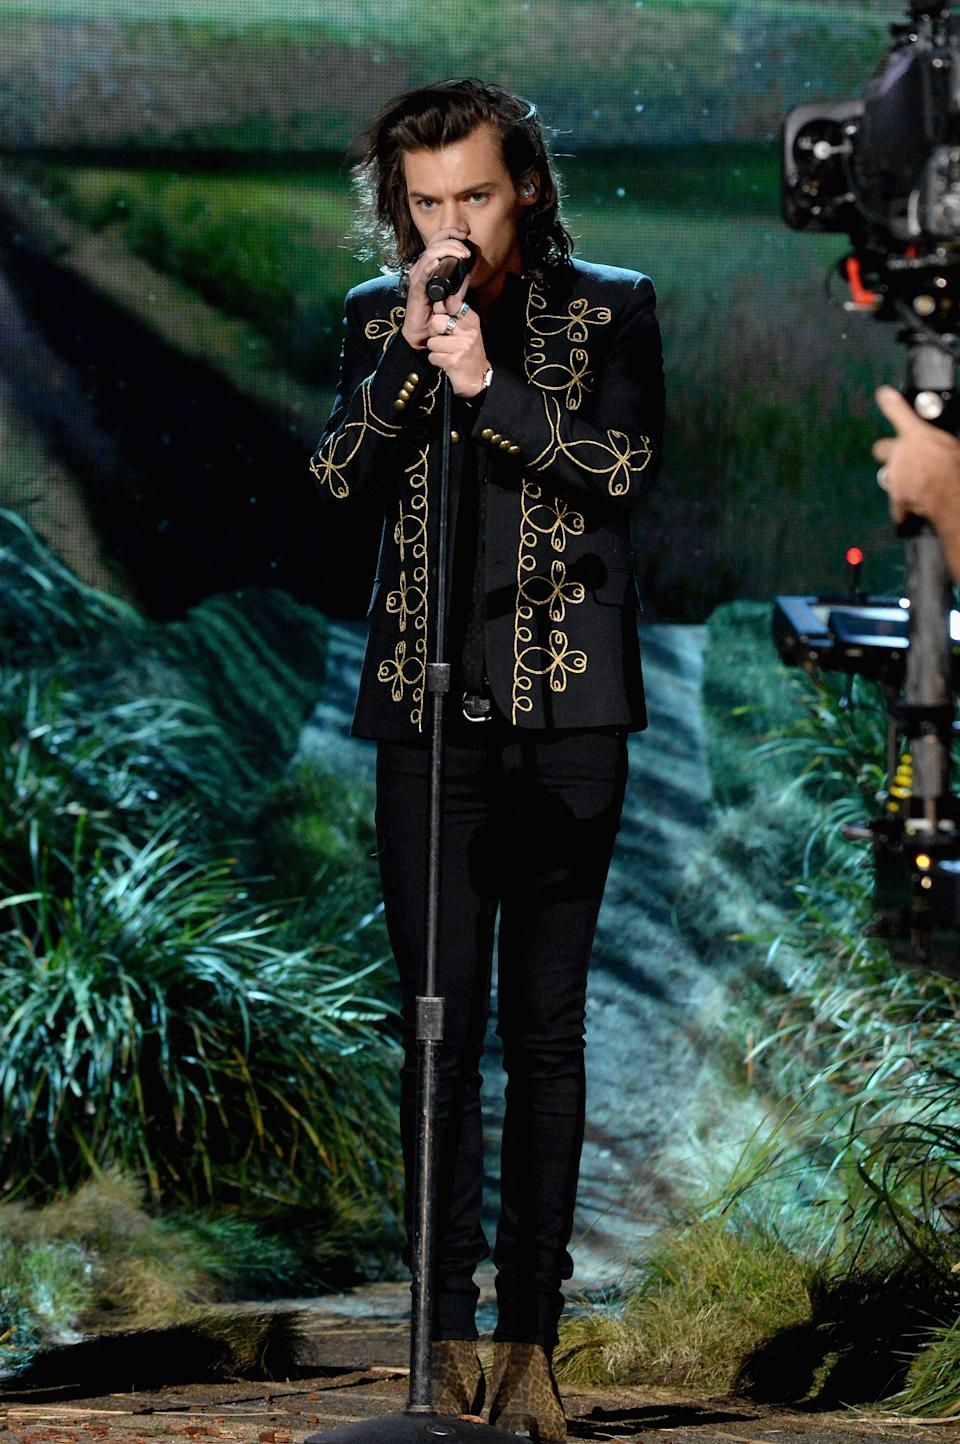 2014 American Music Awards harry Styles